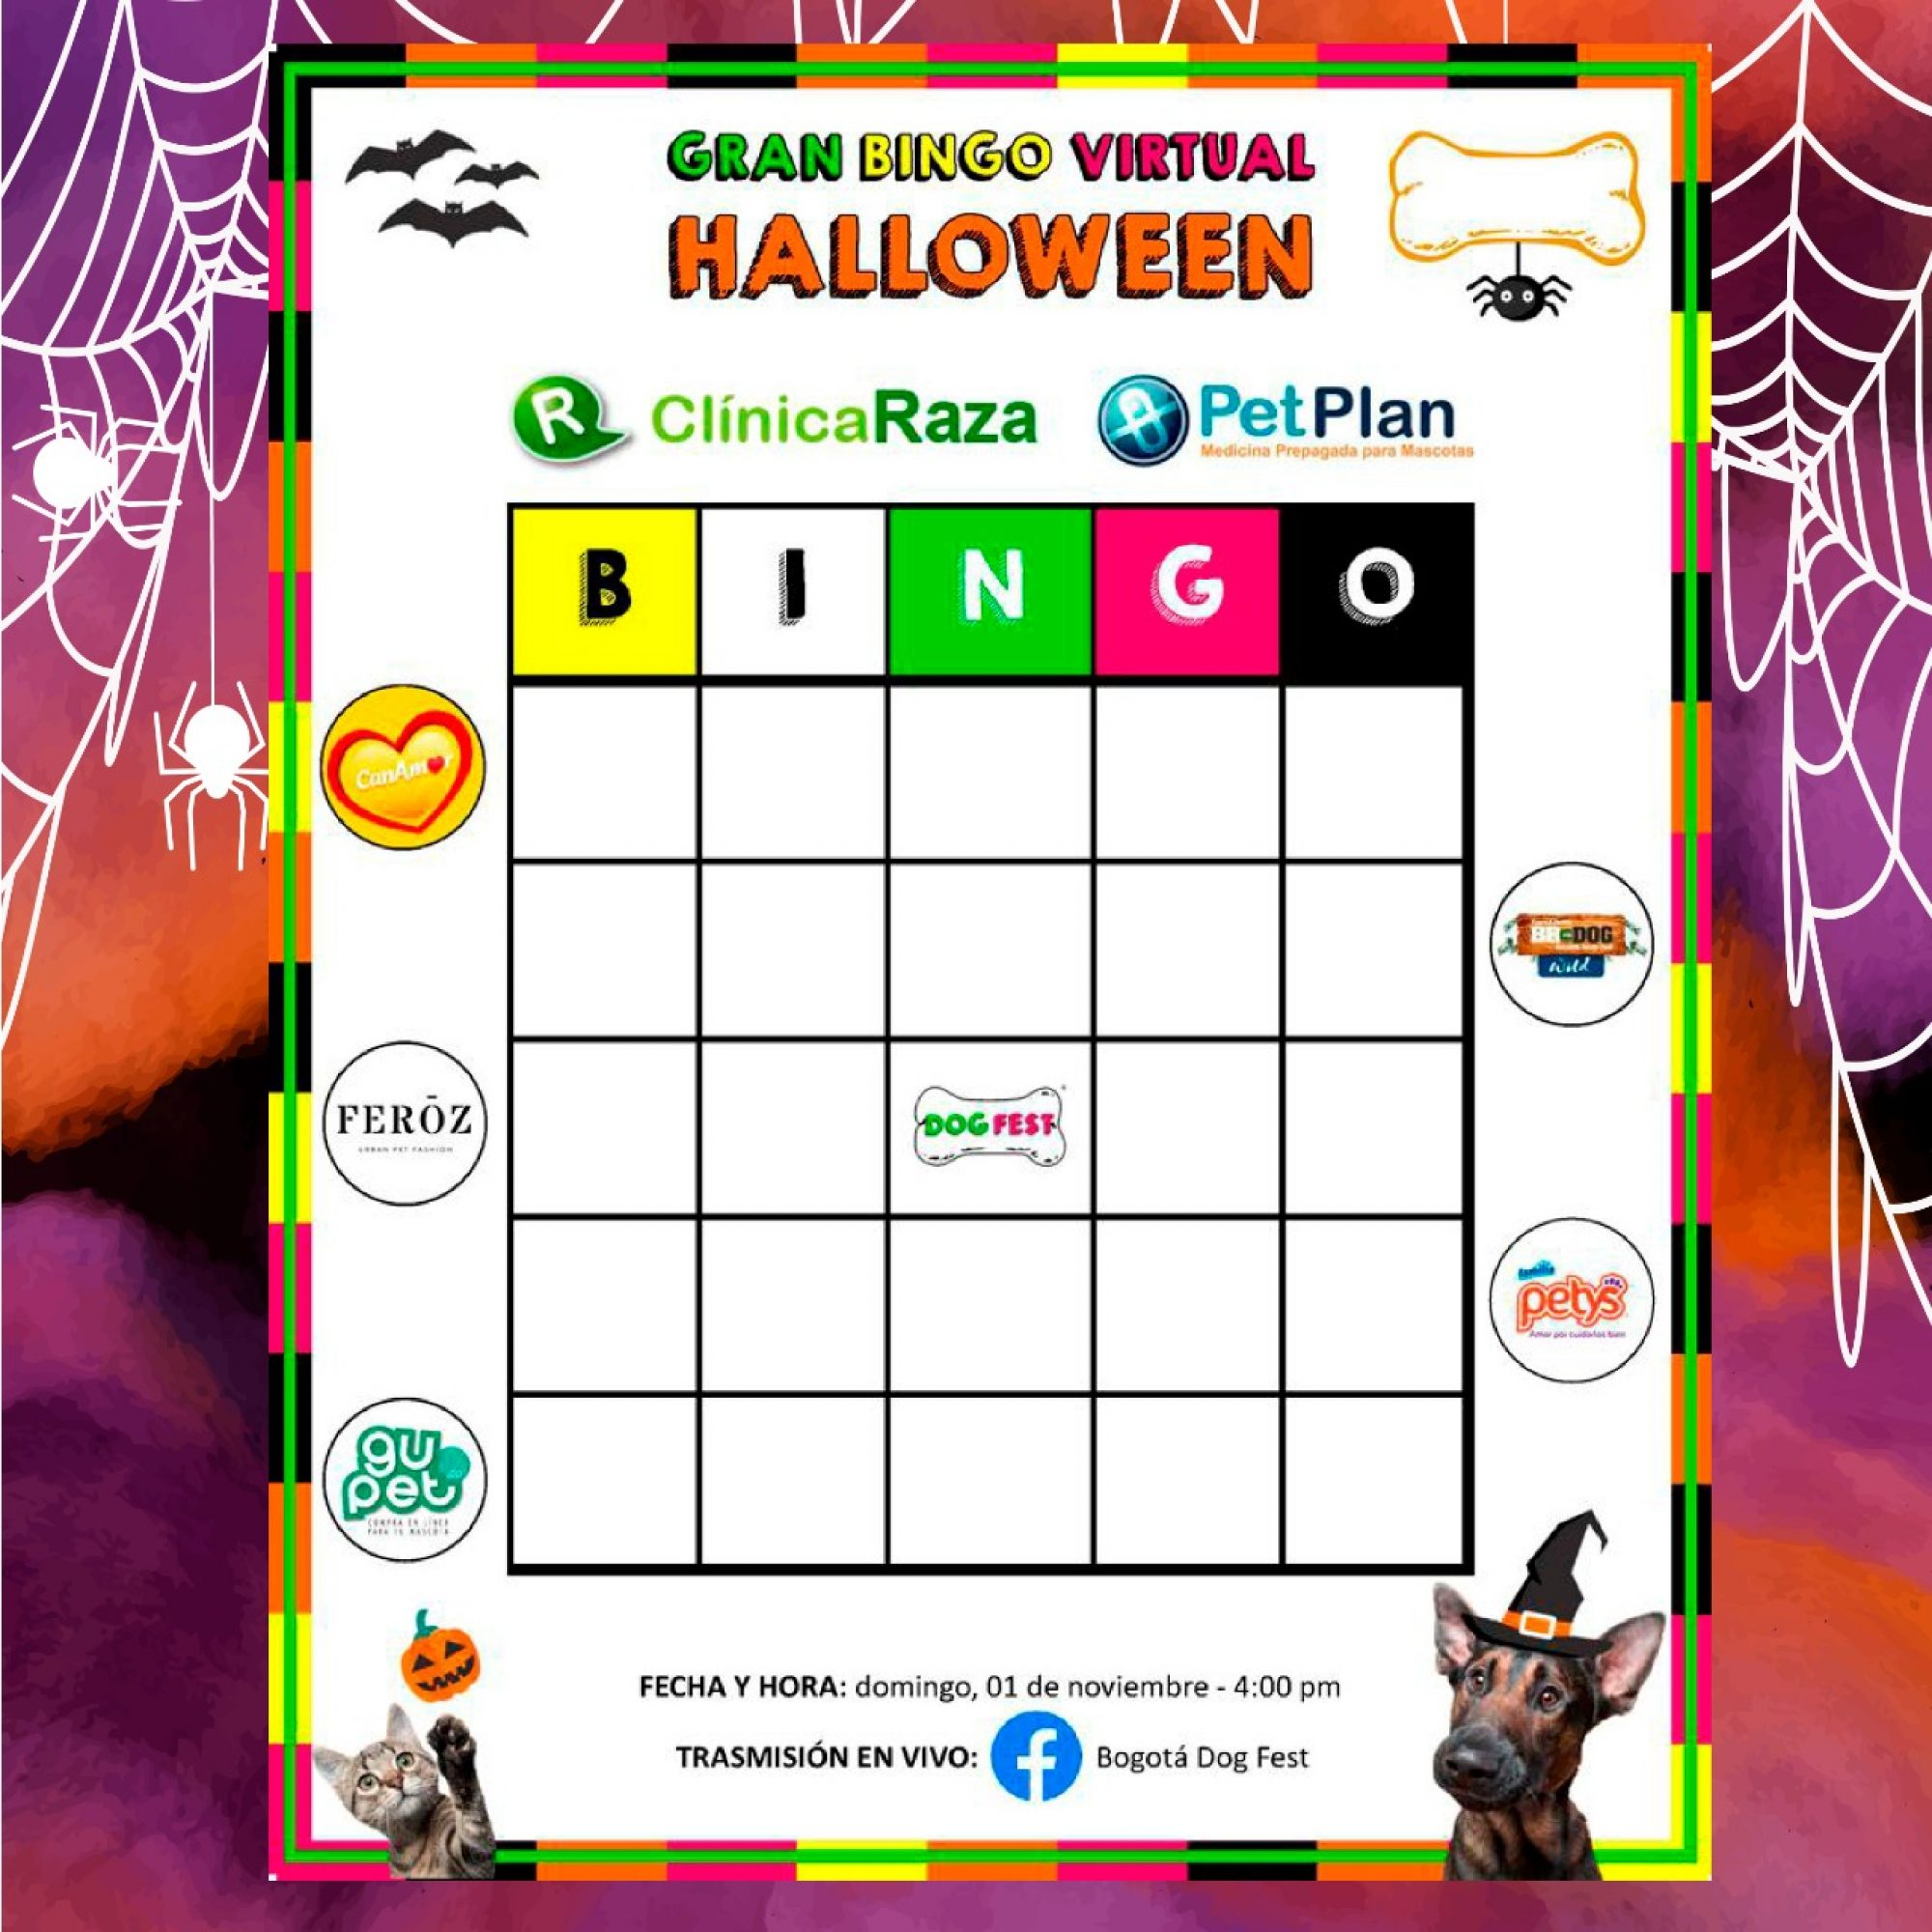 Gran Bingo Virtual Halloween